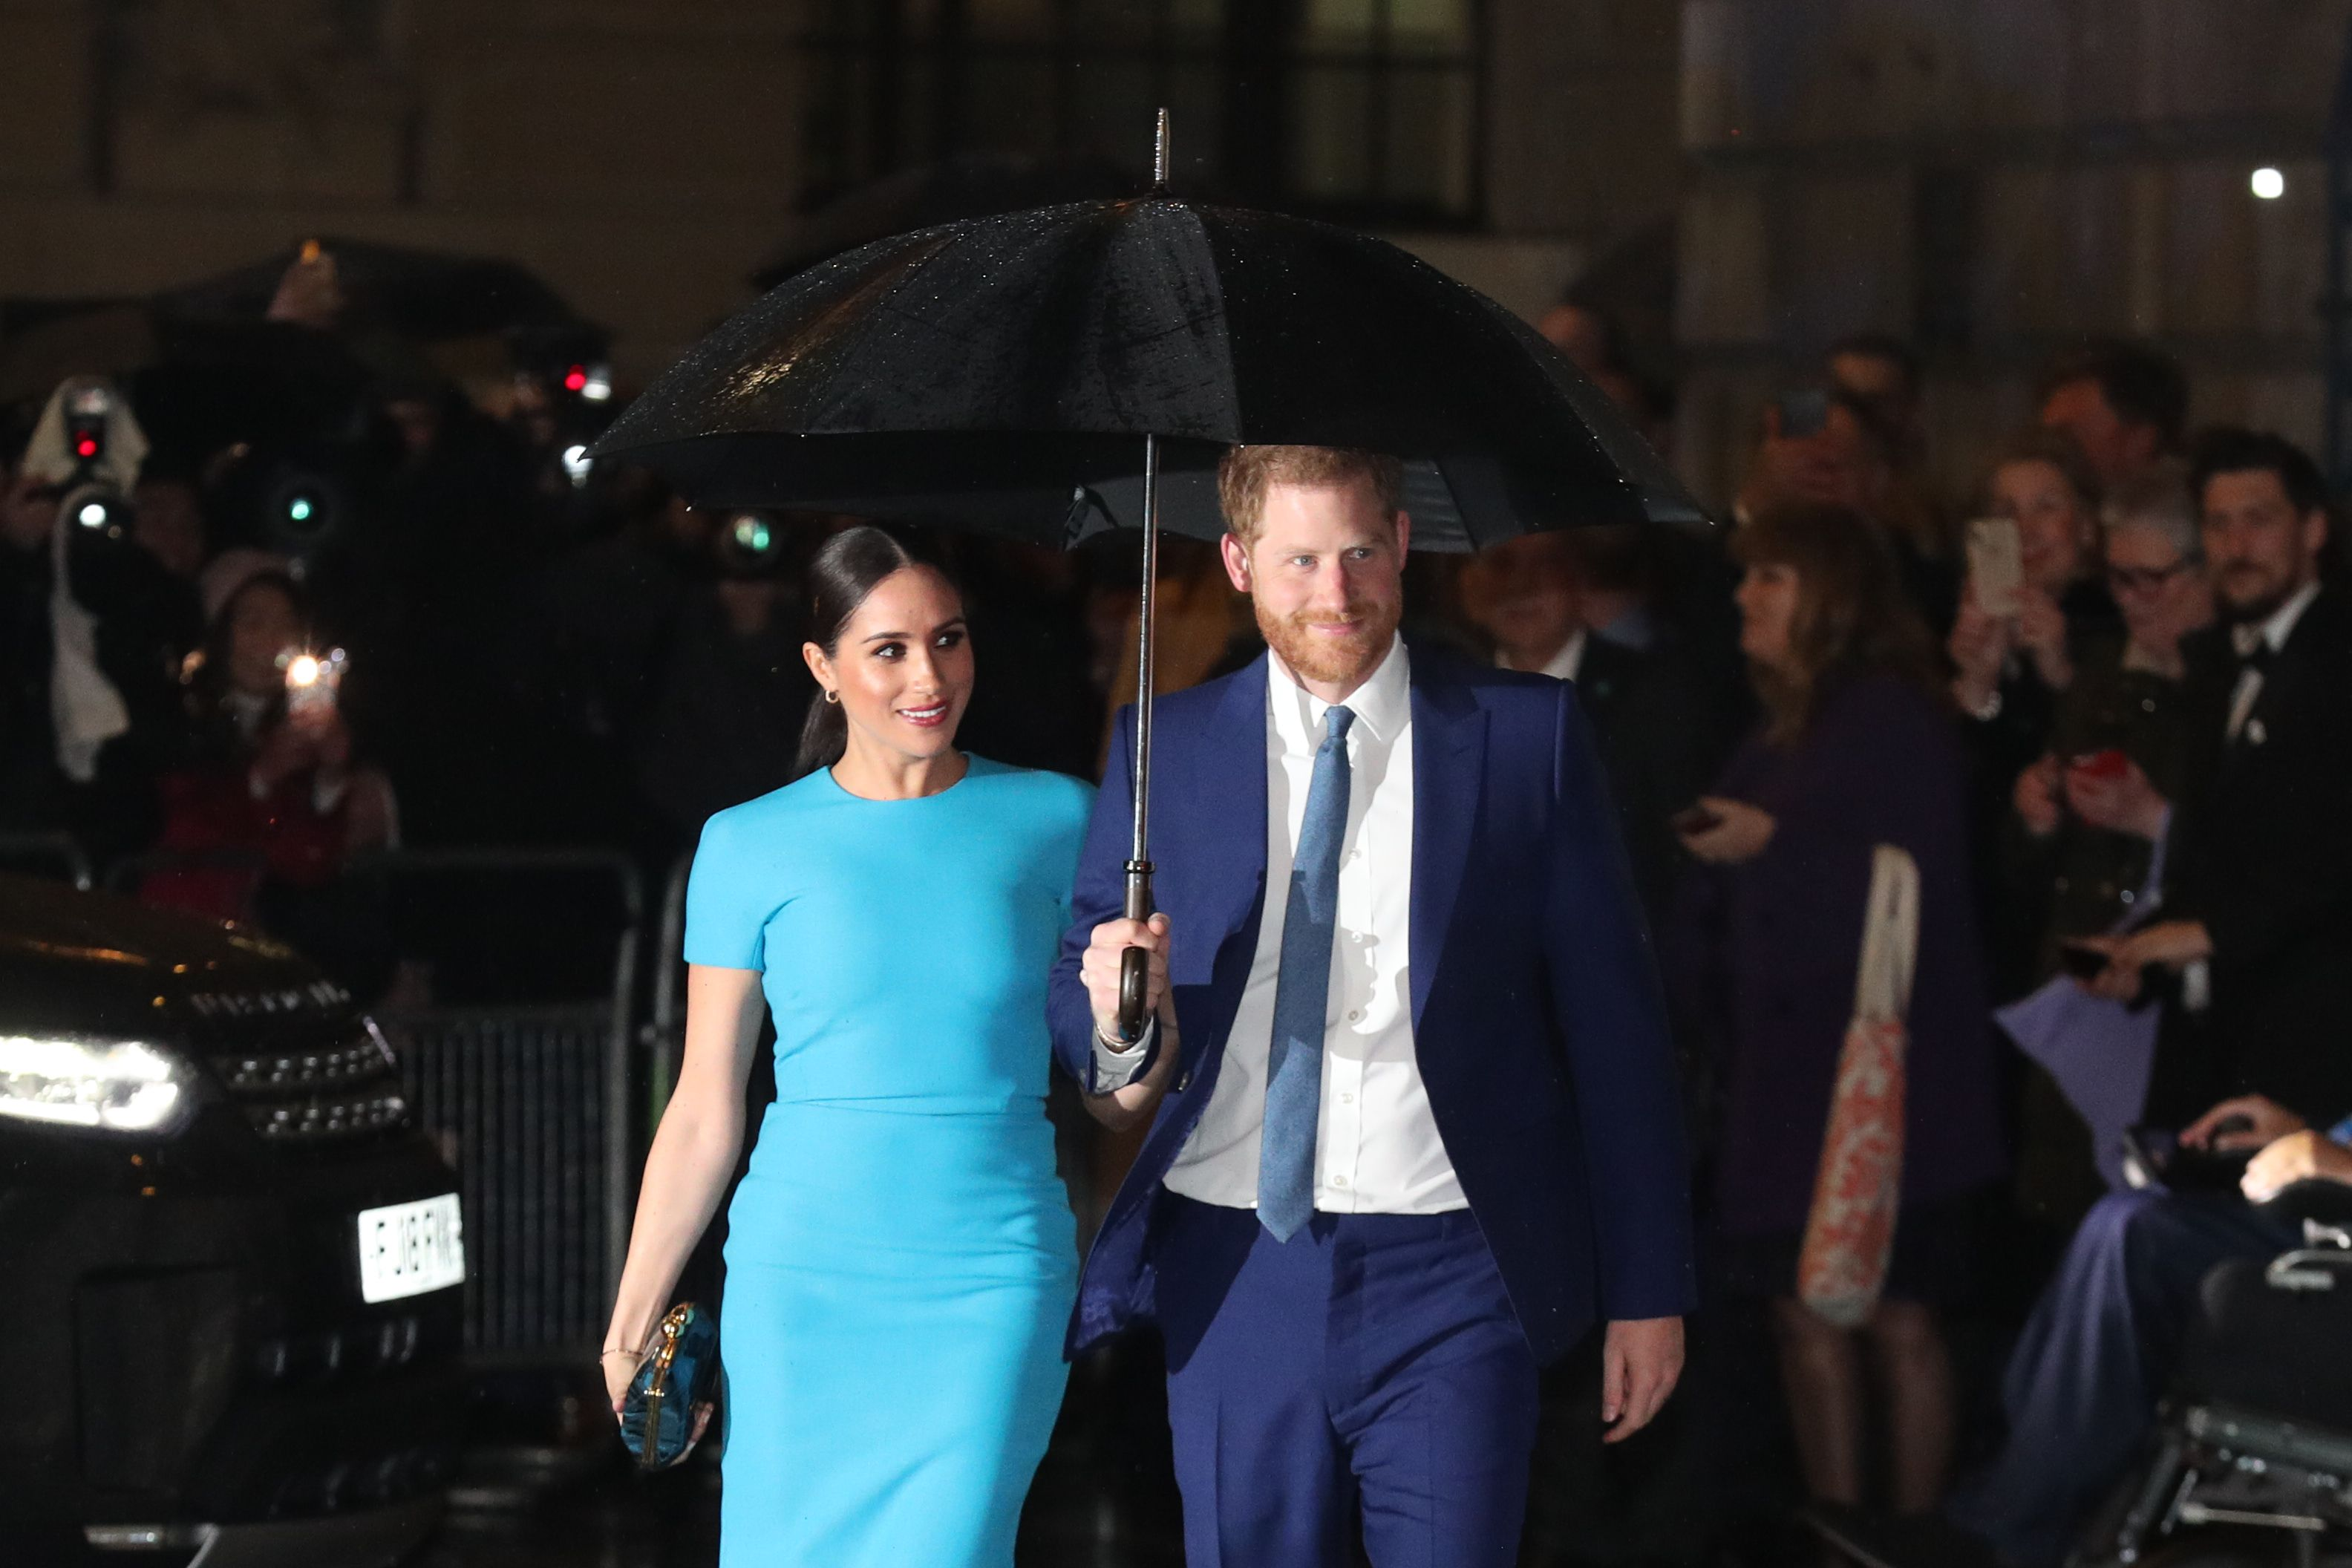 meghan markle prince harry s final events as senior royals dates details more meghan markle prince harry s final